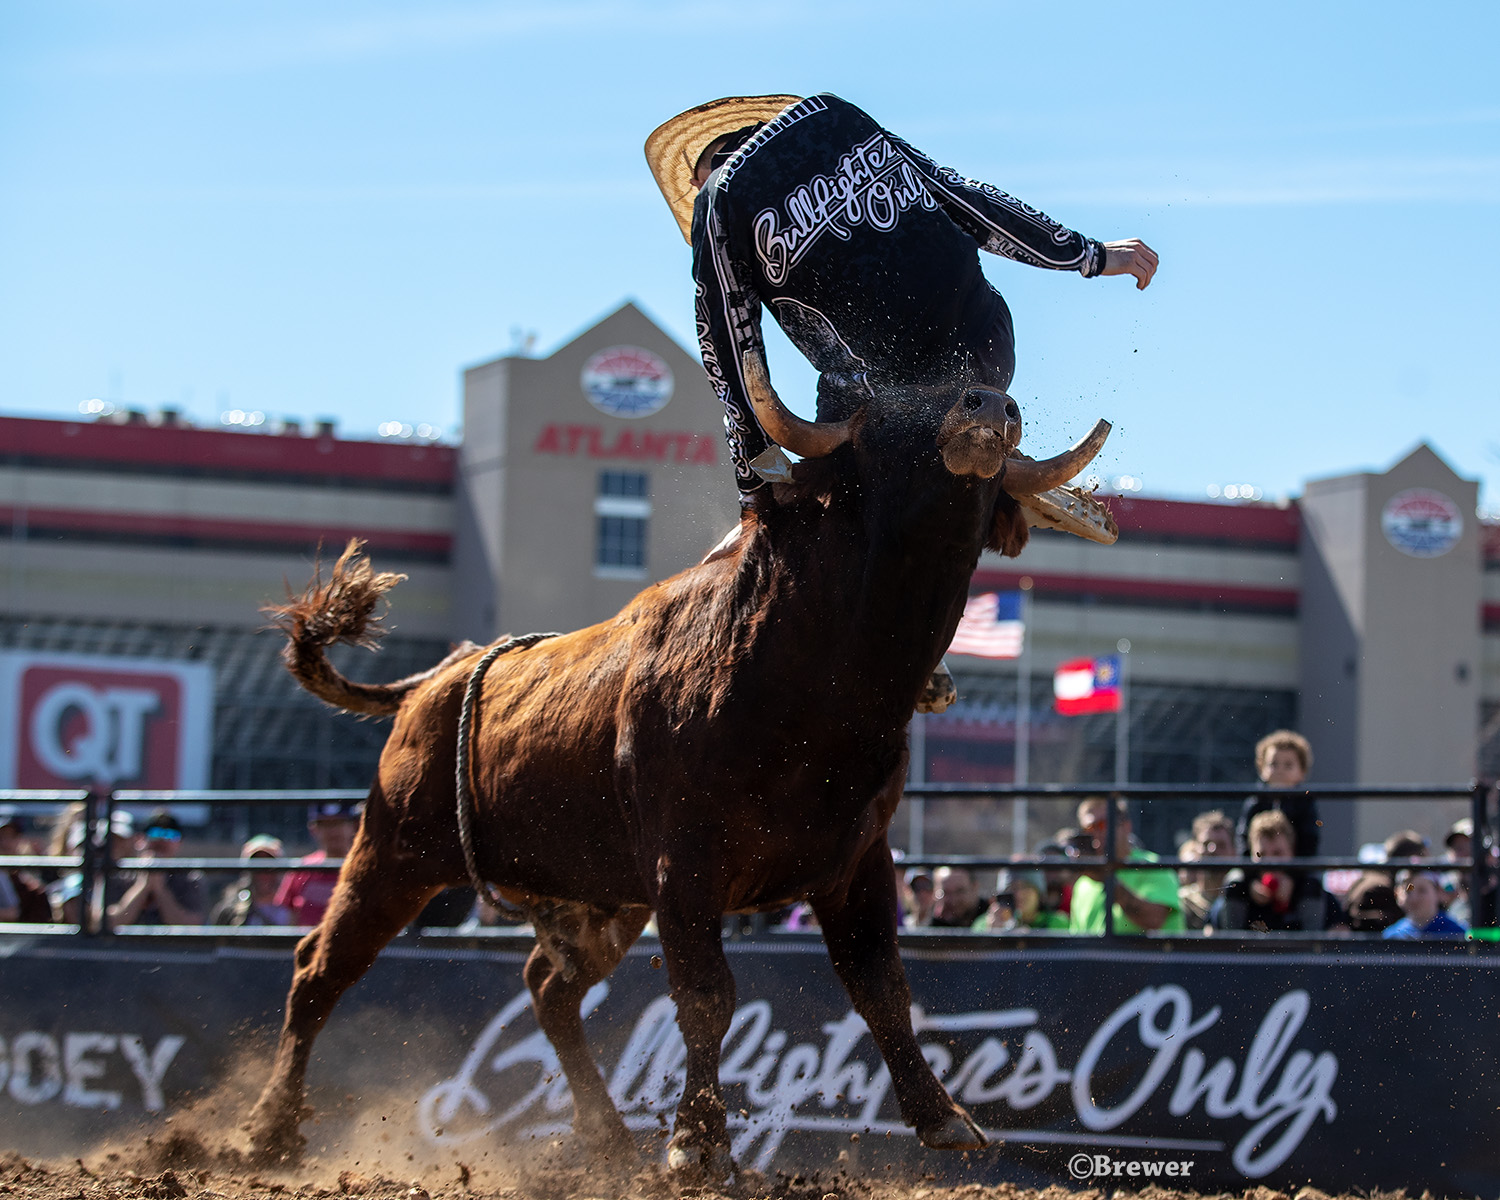 Chance Moorman takes his second jump during his championship-round, 90-point bullfight Sunday to win the Bullfighters Only Speedway Series event in Atlanta. (PHOTO BY TODD BREWER)